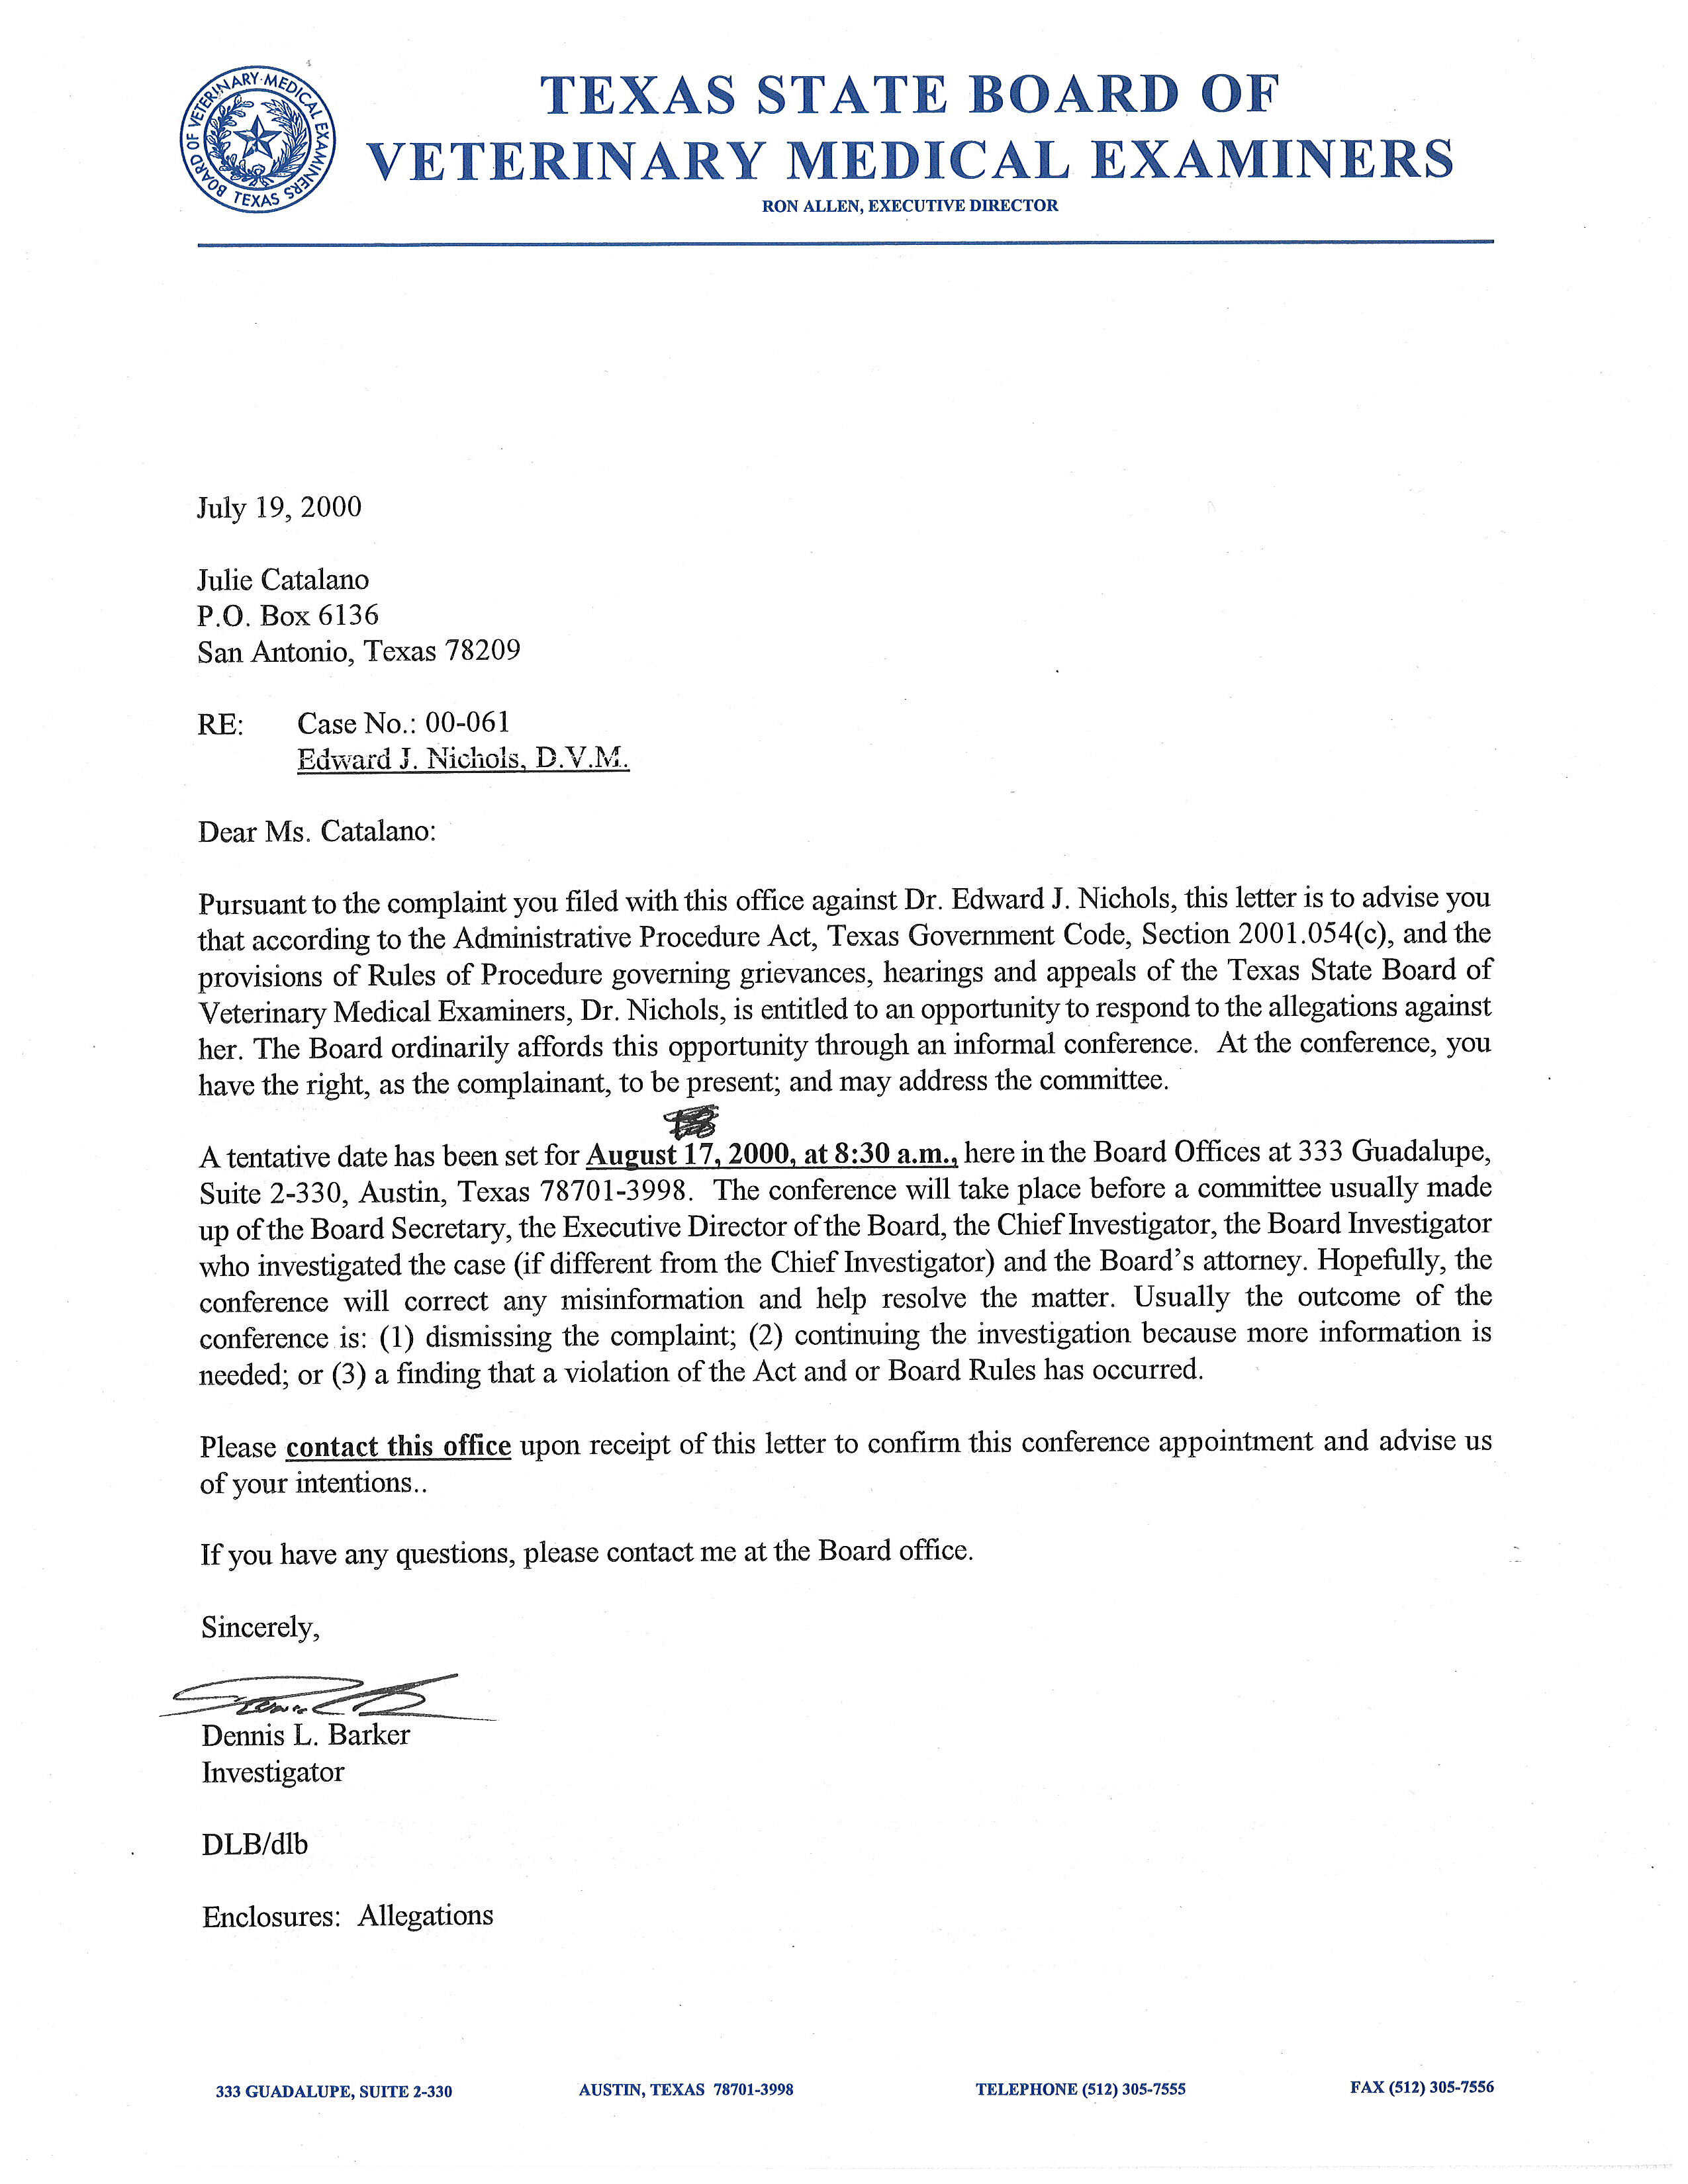 July 19 2000 letter to julie catalano from tsbvme with allegations